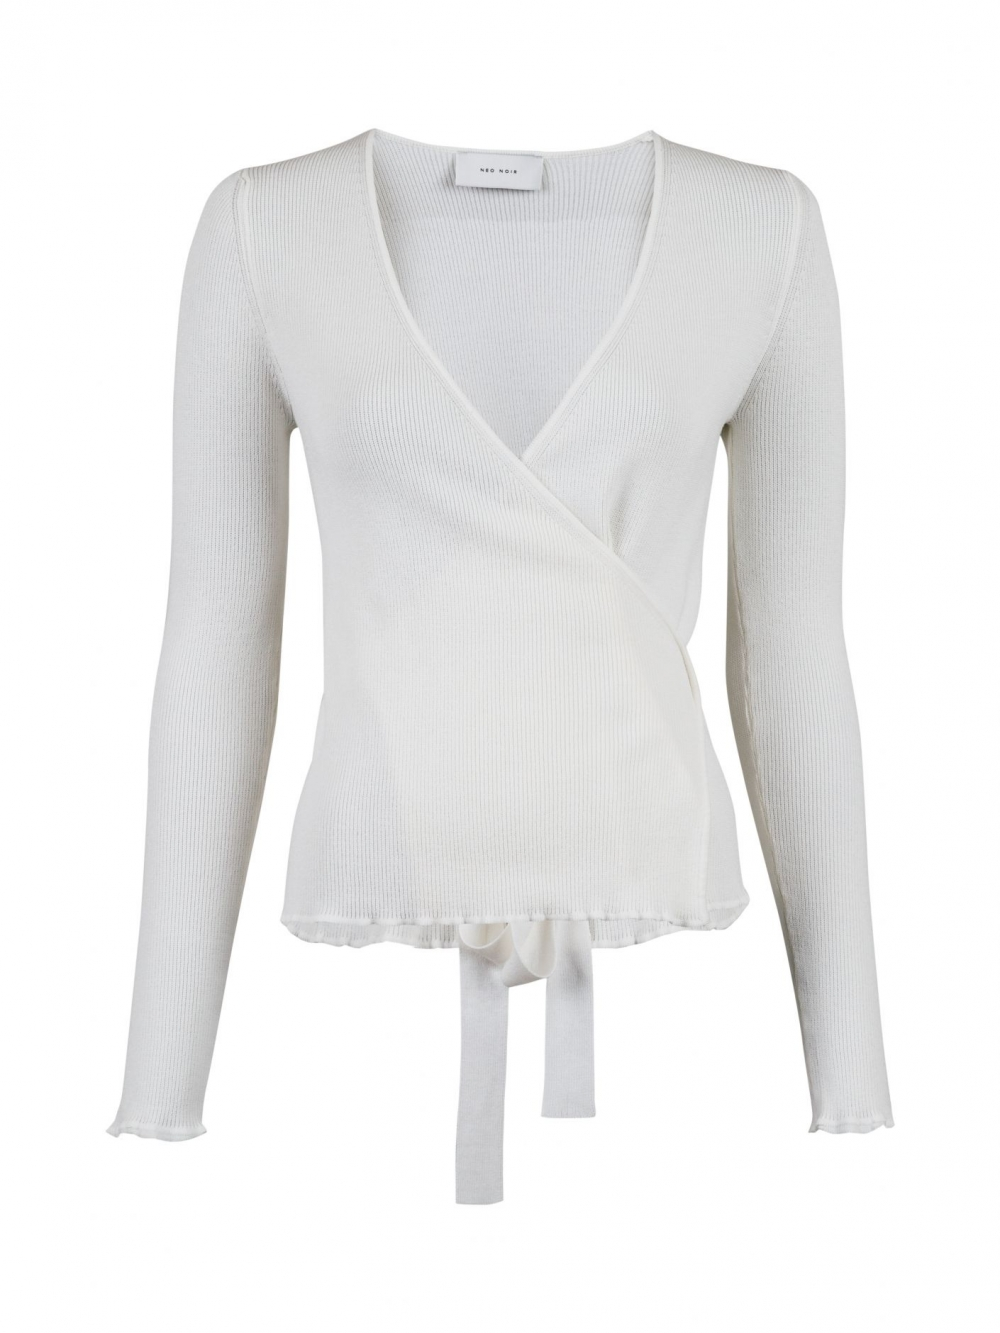 Neo Noir Beso Voile Blouse White | at home